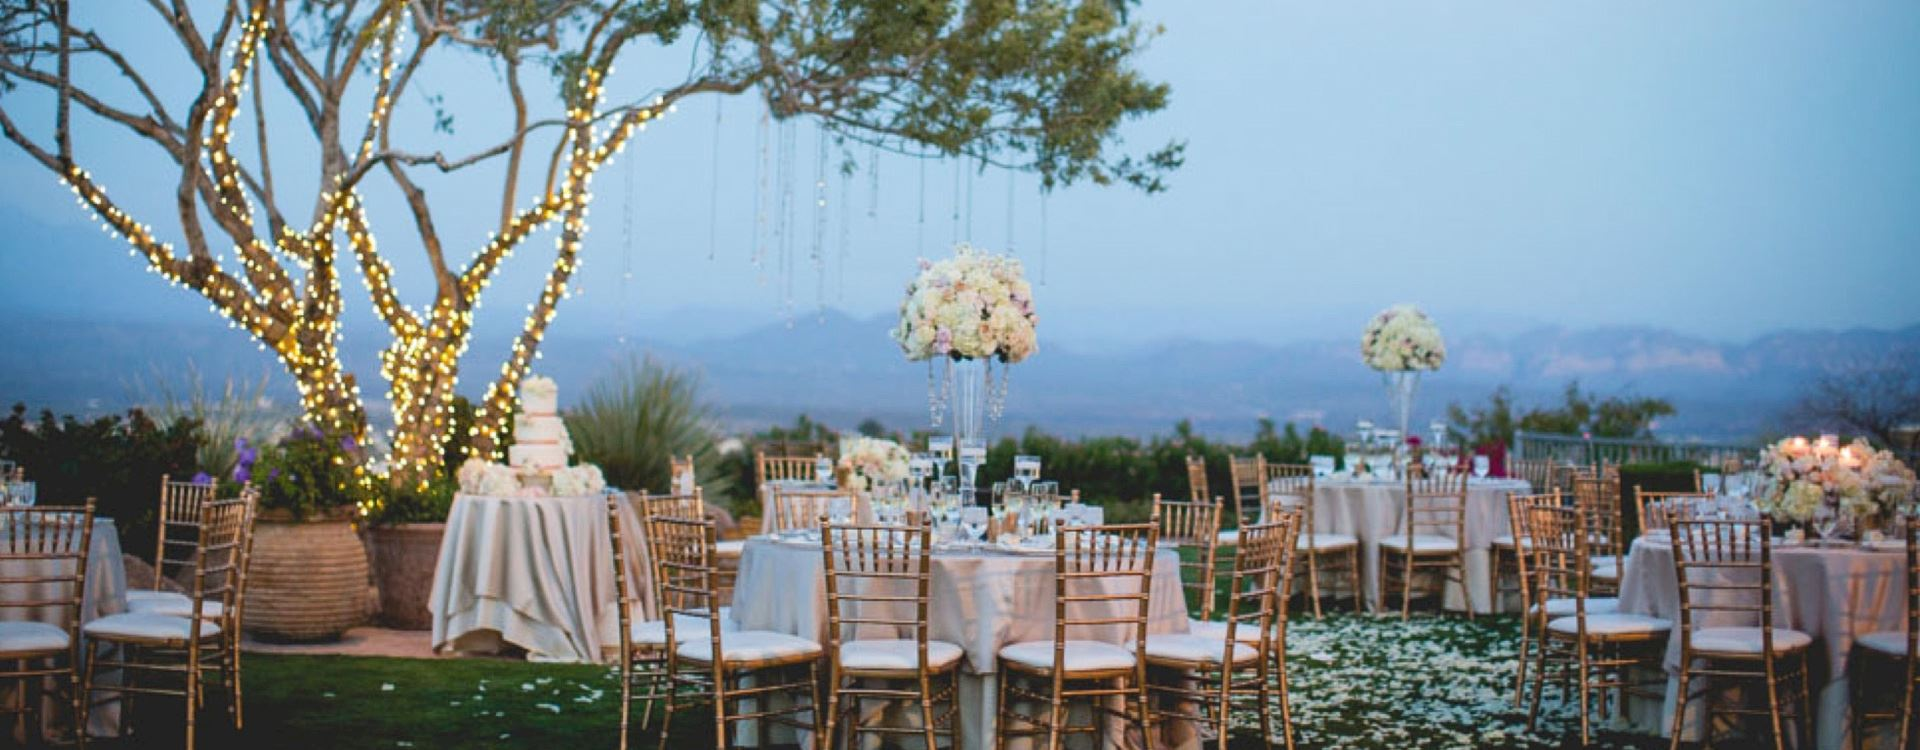 Weddings at Hotel Arizona